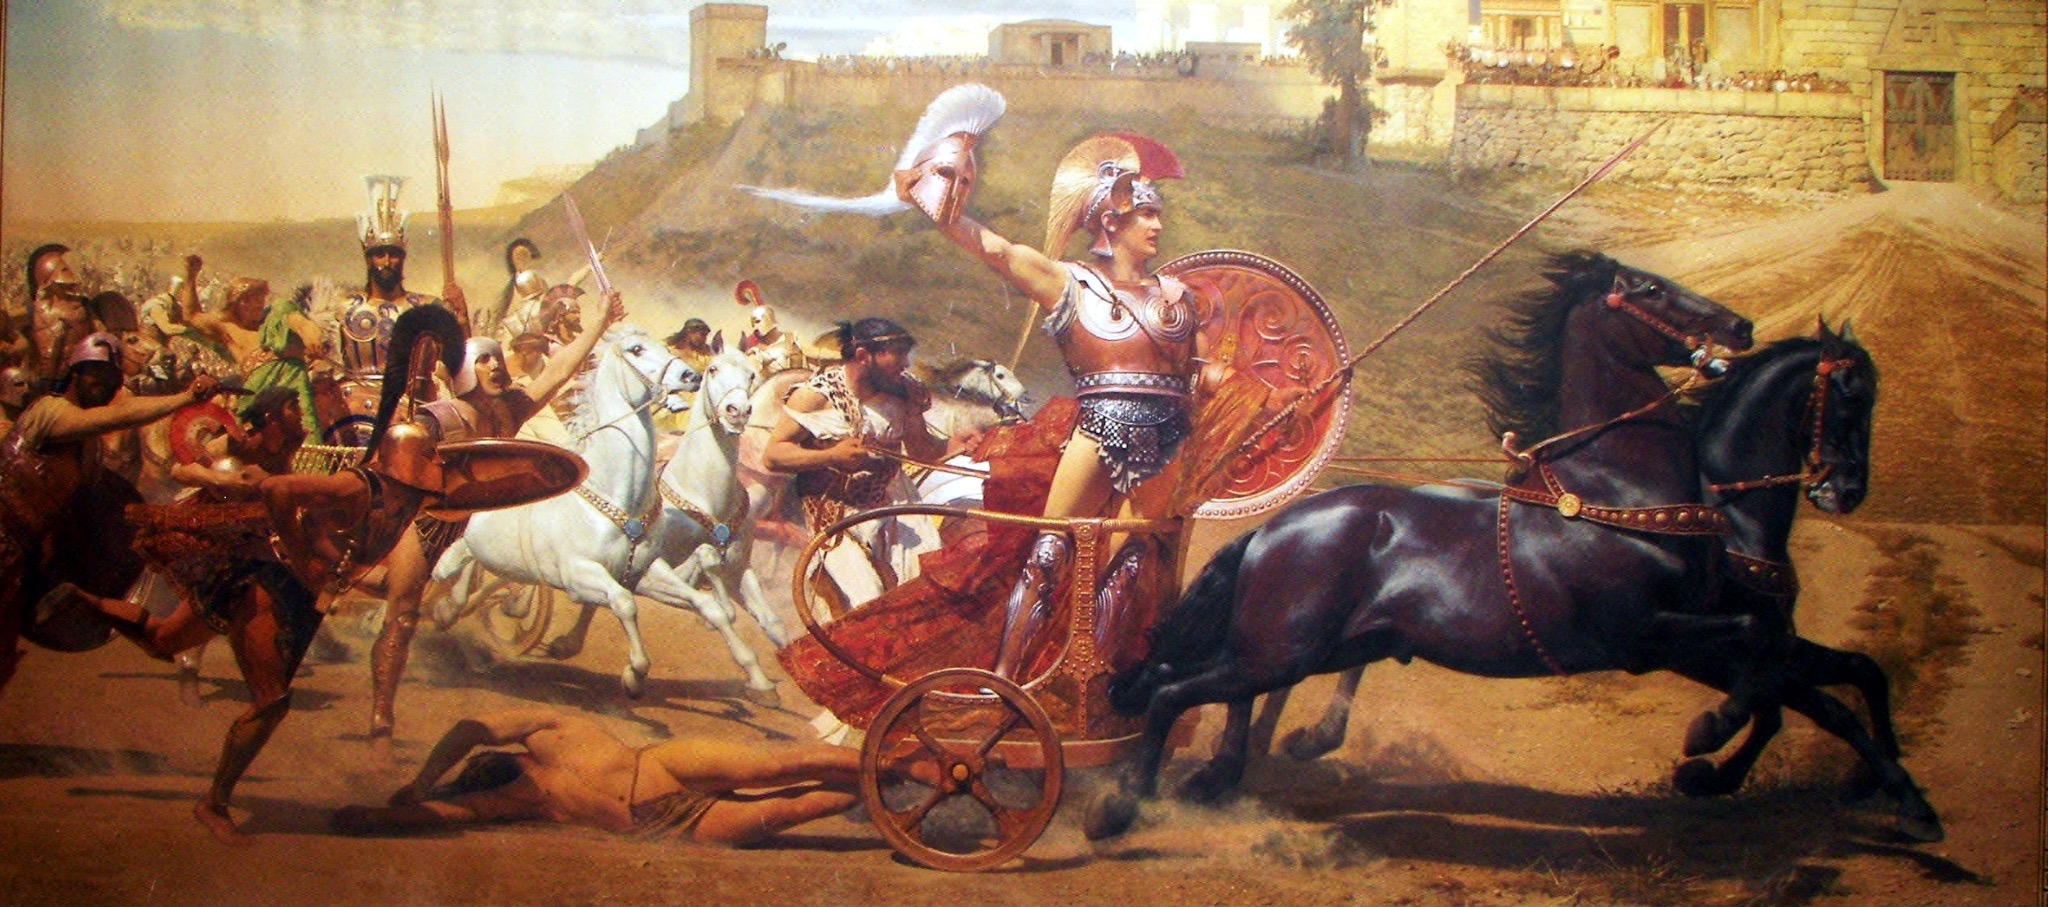 achilles and the trojan war Achilles fought on the greek's side, not the trojan's no, archilles was not a trojan, nor was he a greek he lived on the island of crete with his mother, and crete was a nuertal territory although in the movie with brad pitt and orlando bloom he may have at the end tried to help save a trojan woman he himself was not one.